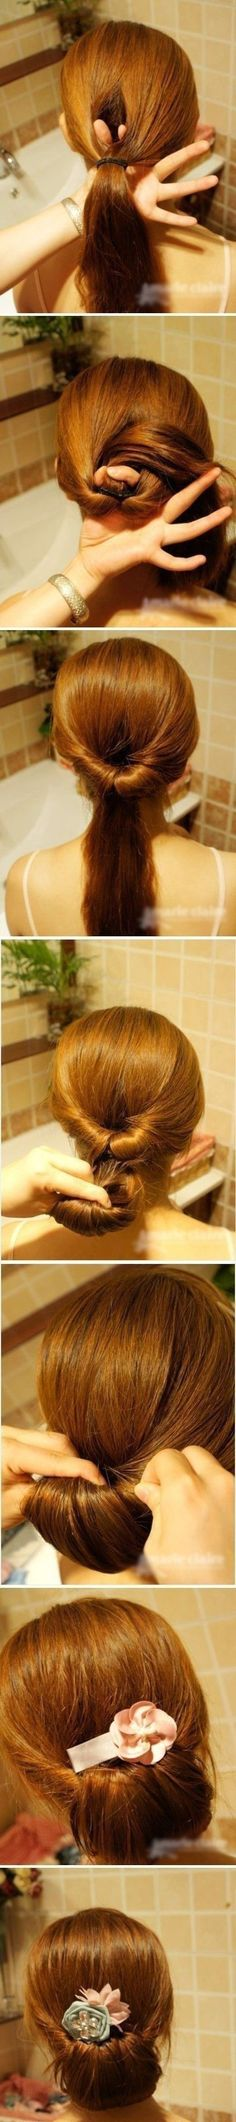 Cool DIY hairstyles for girls